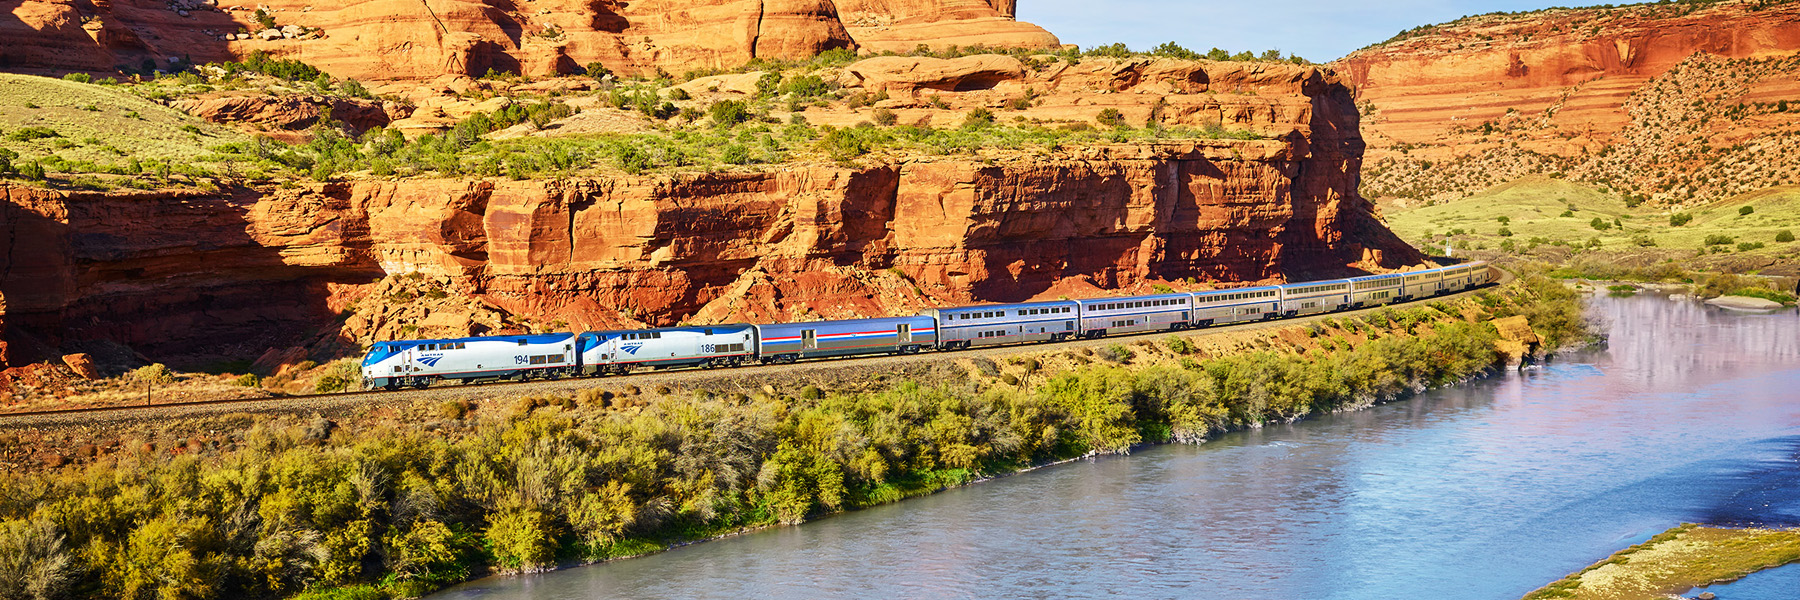 6 Of The Best Scenic Train Trips In The Usa Momswhosave Com